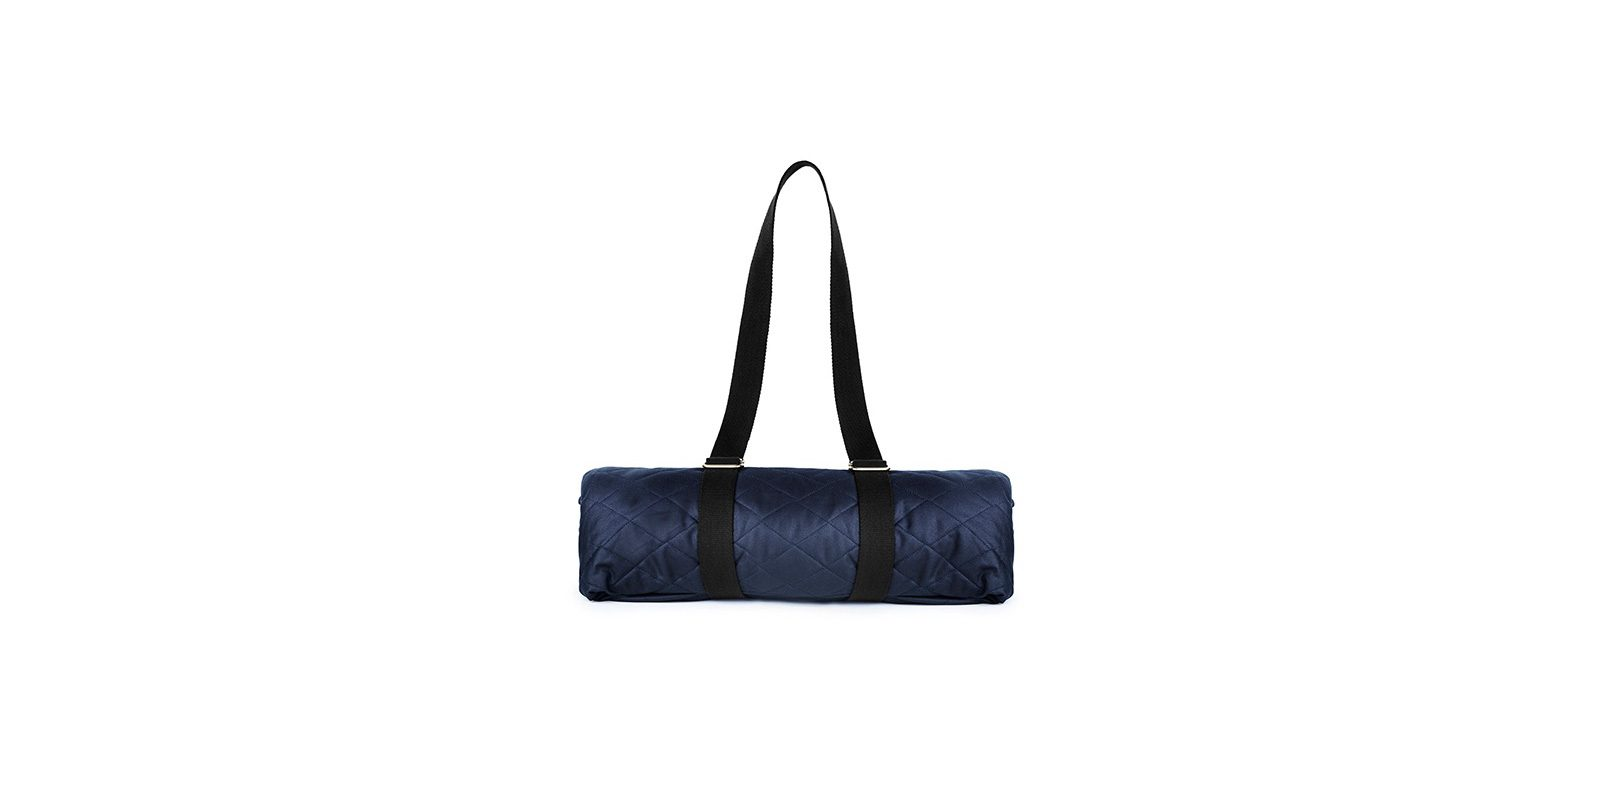 Malle Expedition Roll 1600x792 - The Malle Expedition Roll